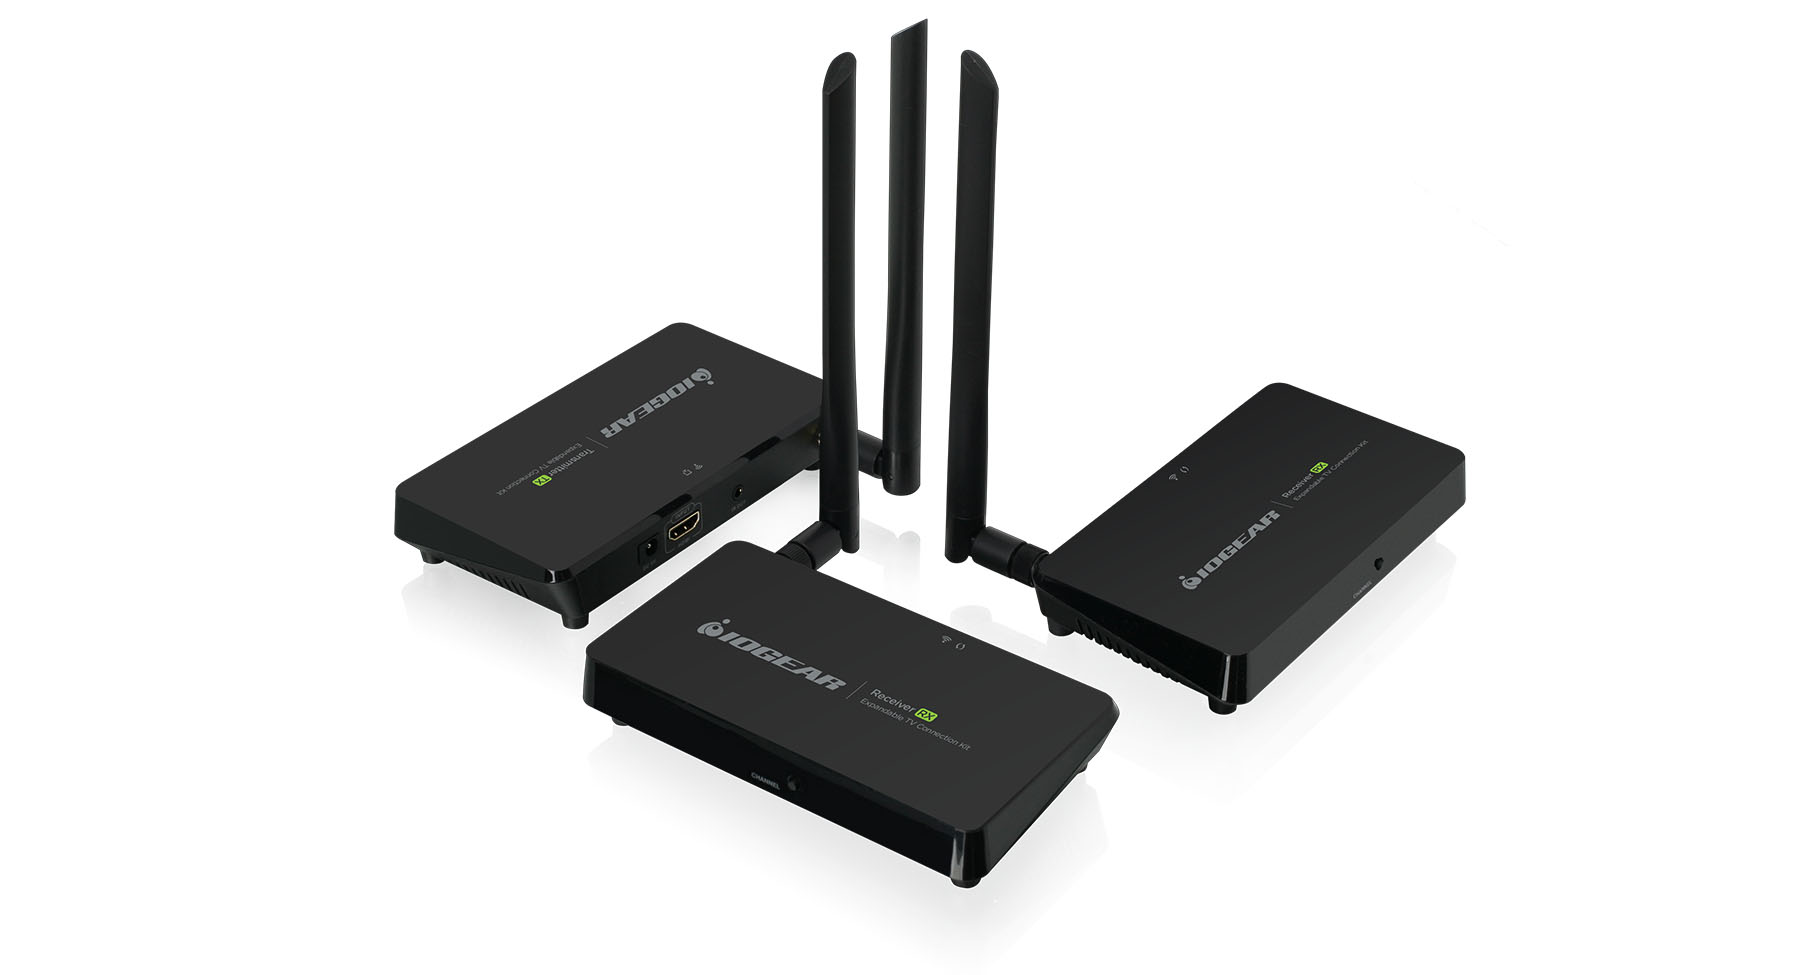 Expandable Wireless TV Connection Kit with 2 Receivers